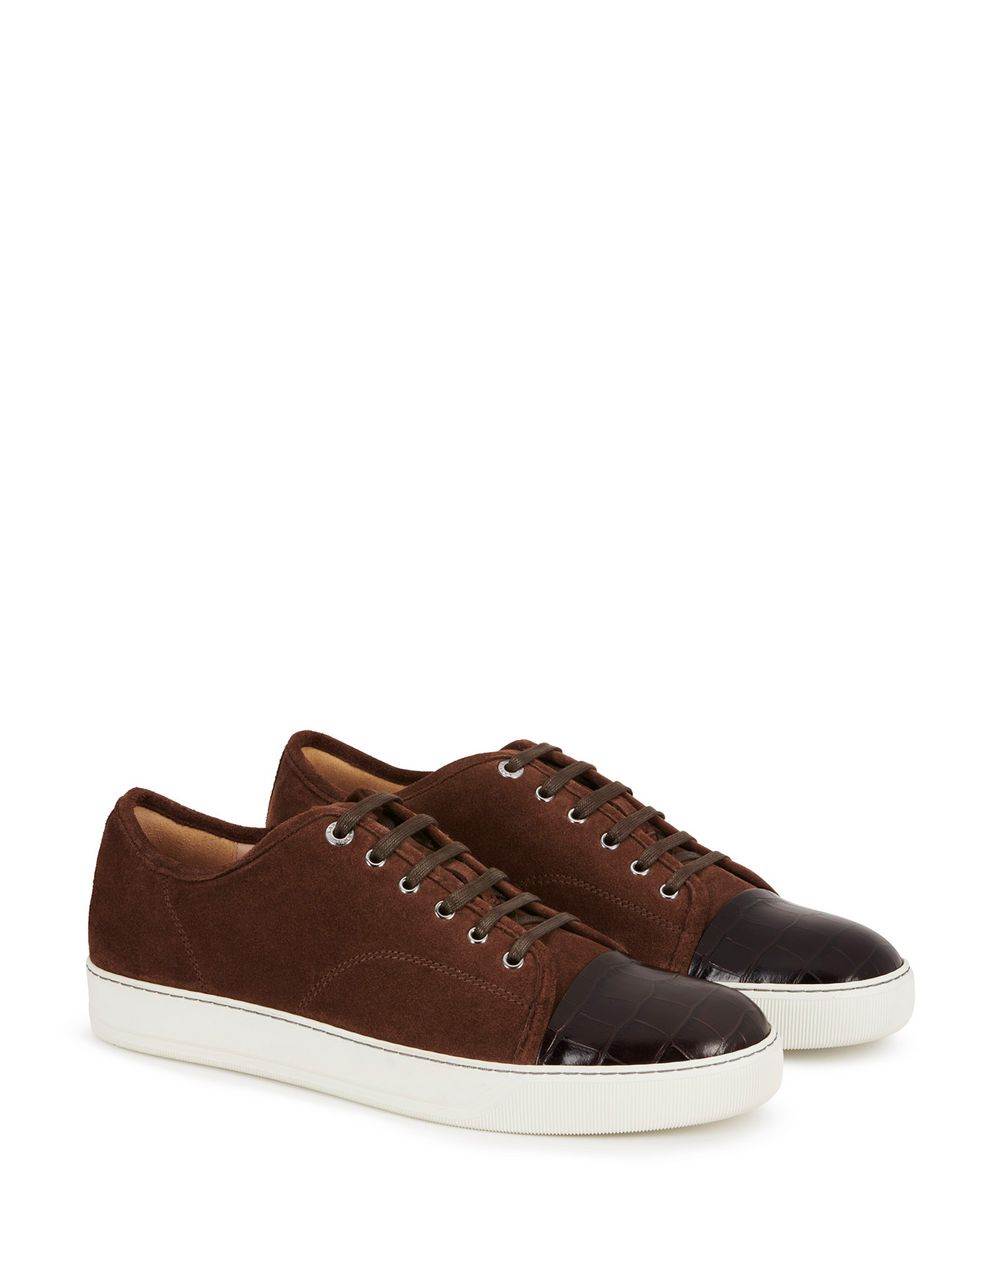 DBB1 TRAINERS IN SUEDE AND CROCODILE-EMBOSSED CALFSKIN LEATHER - Lanvin